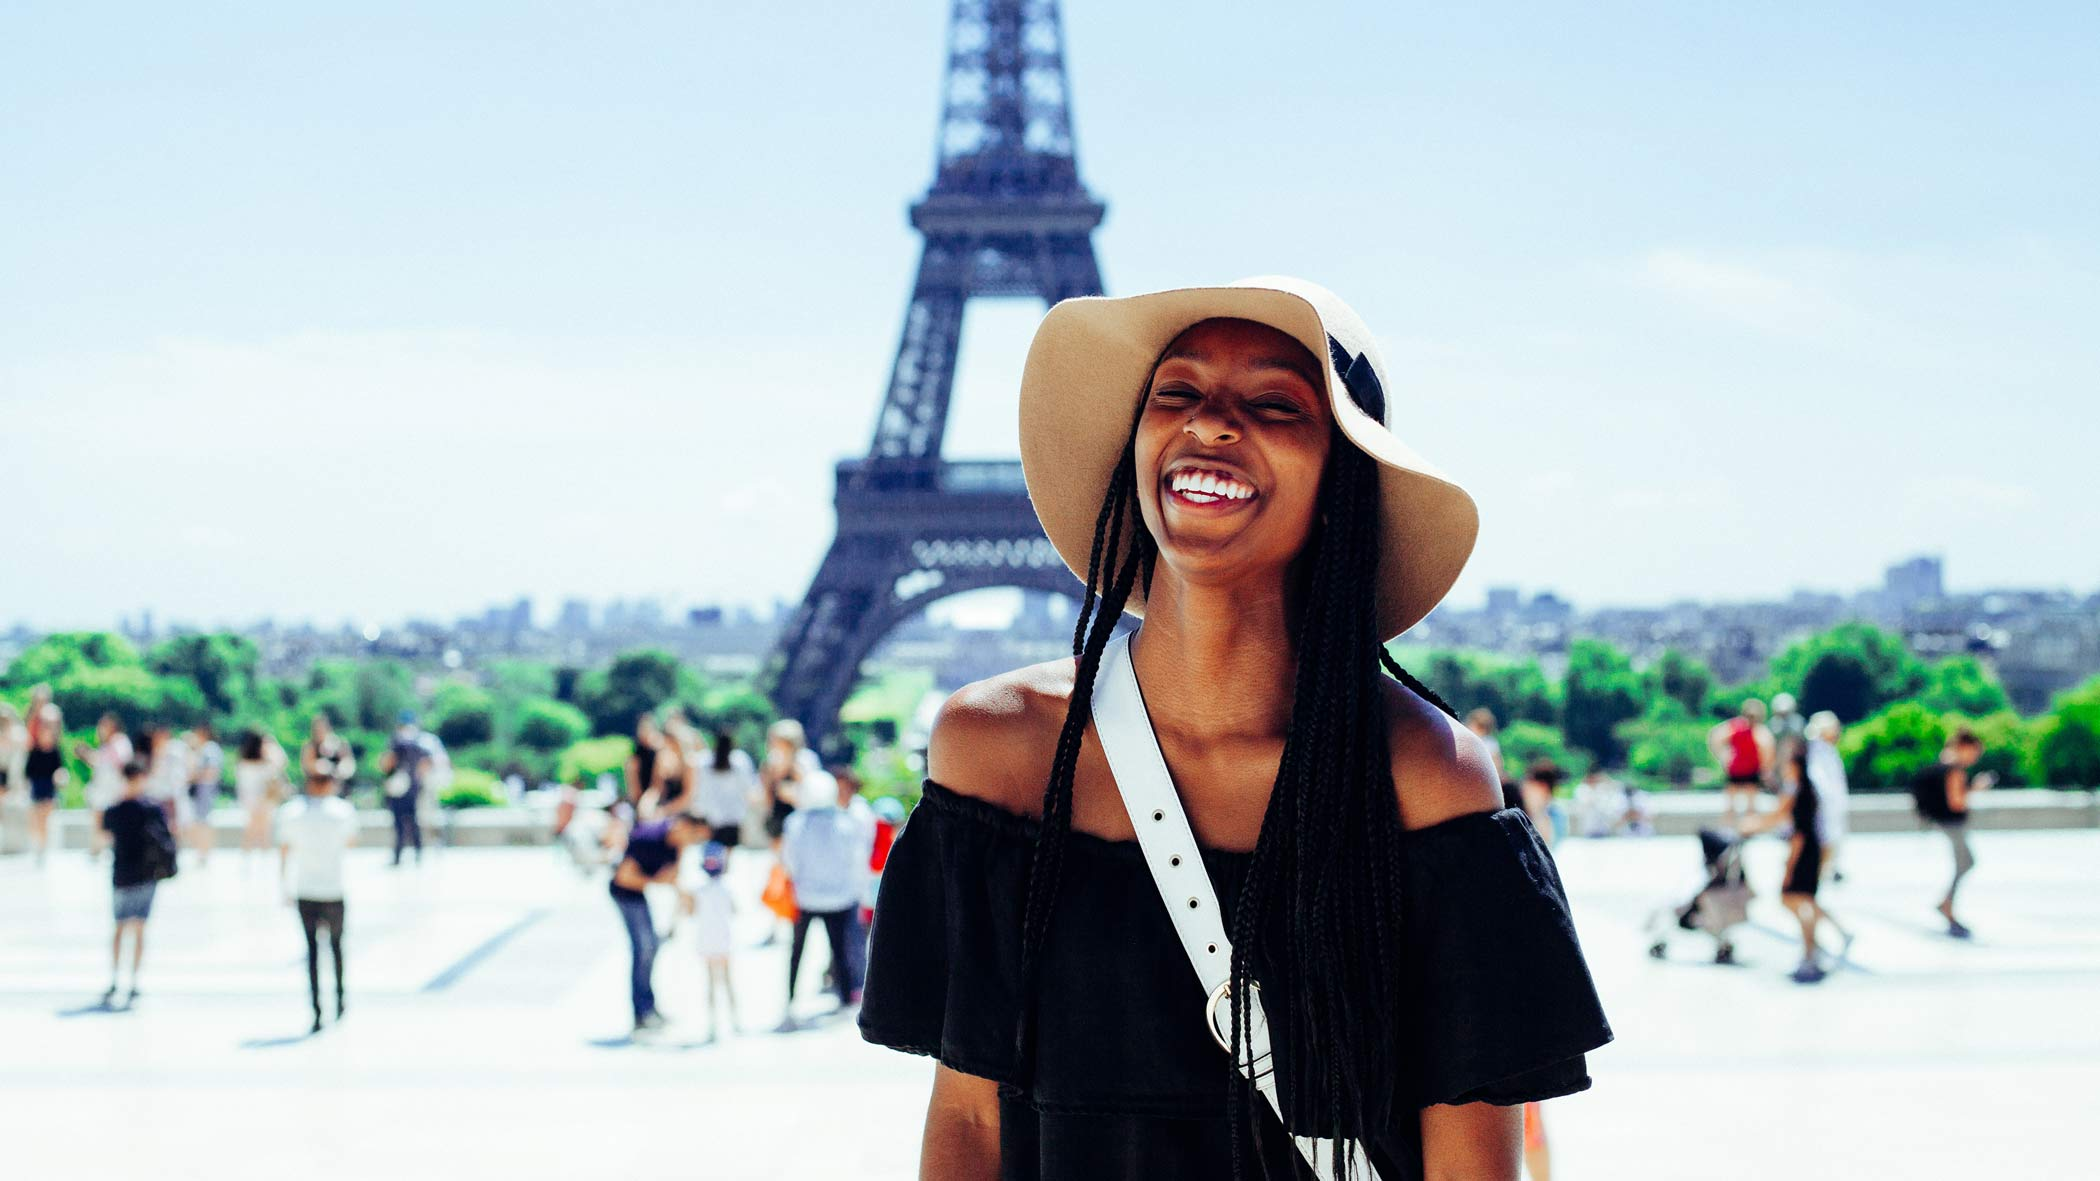 Wanderlust Trips exploring Paris, girl, Eifel Tower